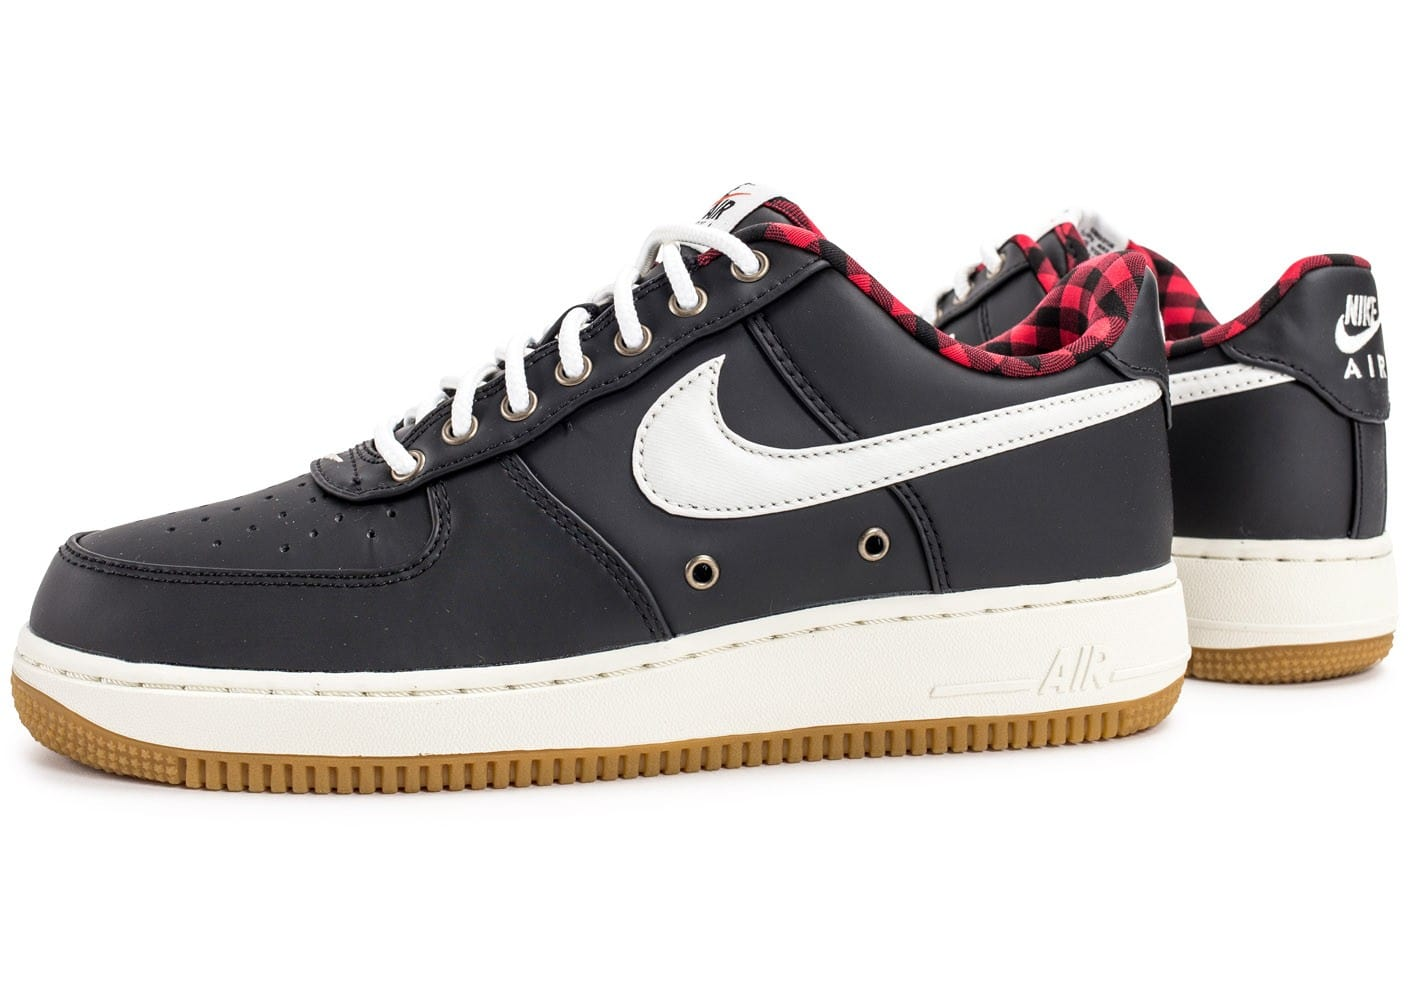 nike air force 1 39 07 lv08 lumberjack noire chaussures homme chausport. Black Bedroom Furniture Sets. Home Design Ideas